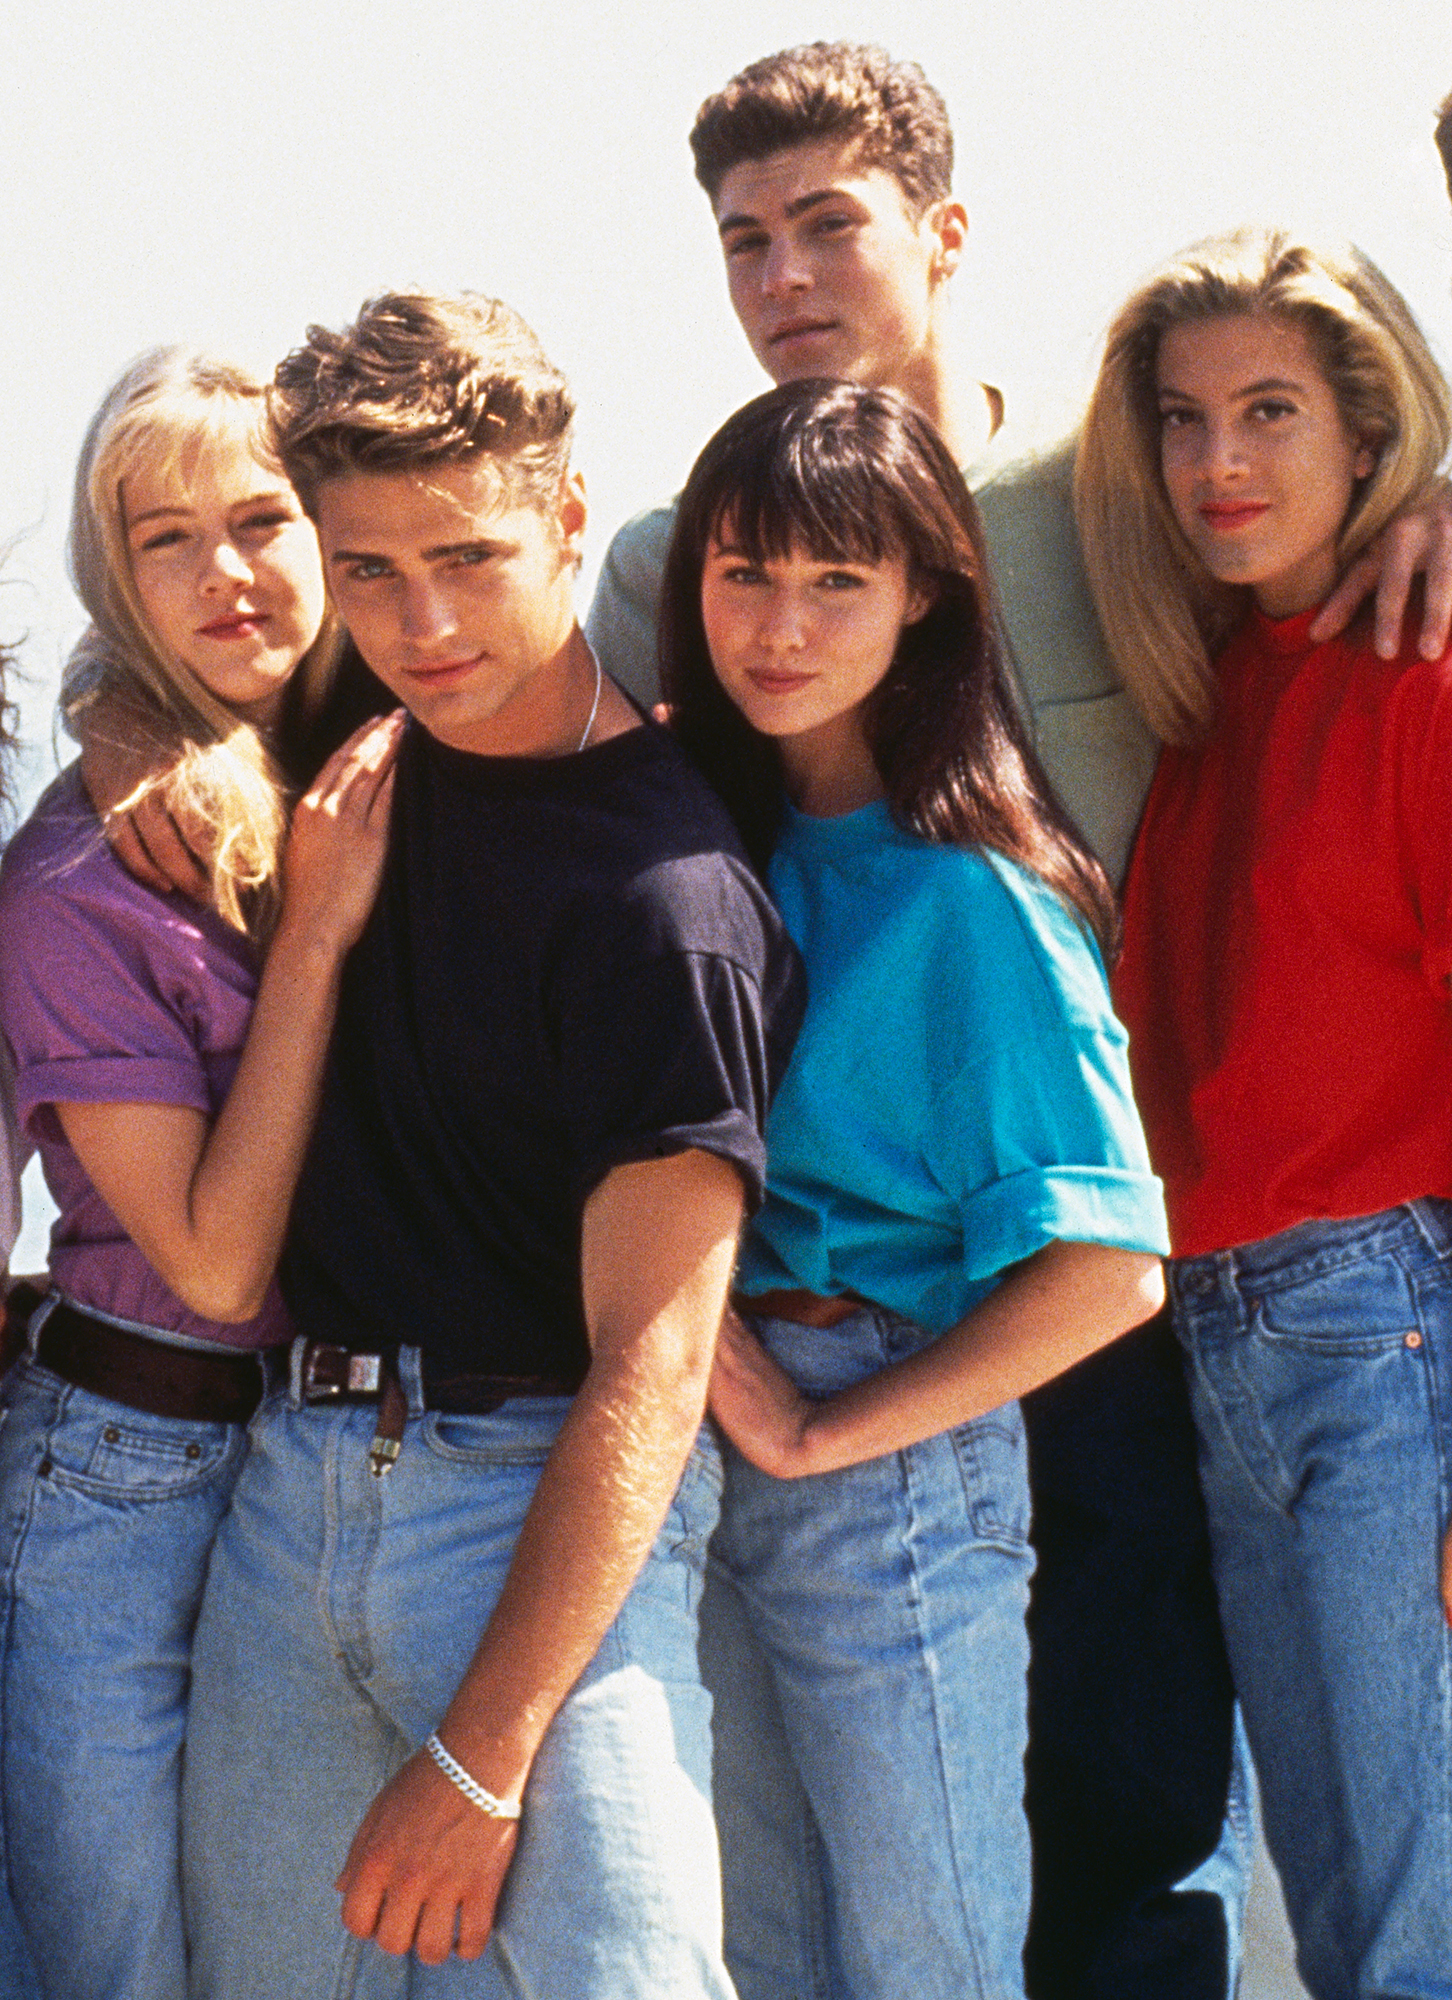 Tori-Spelling-Shannen-Doherty-90210 - The cast of 90210